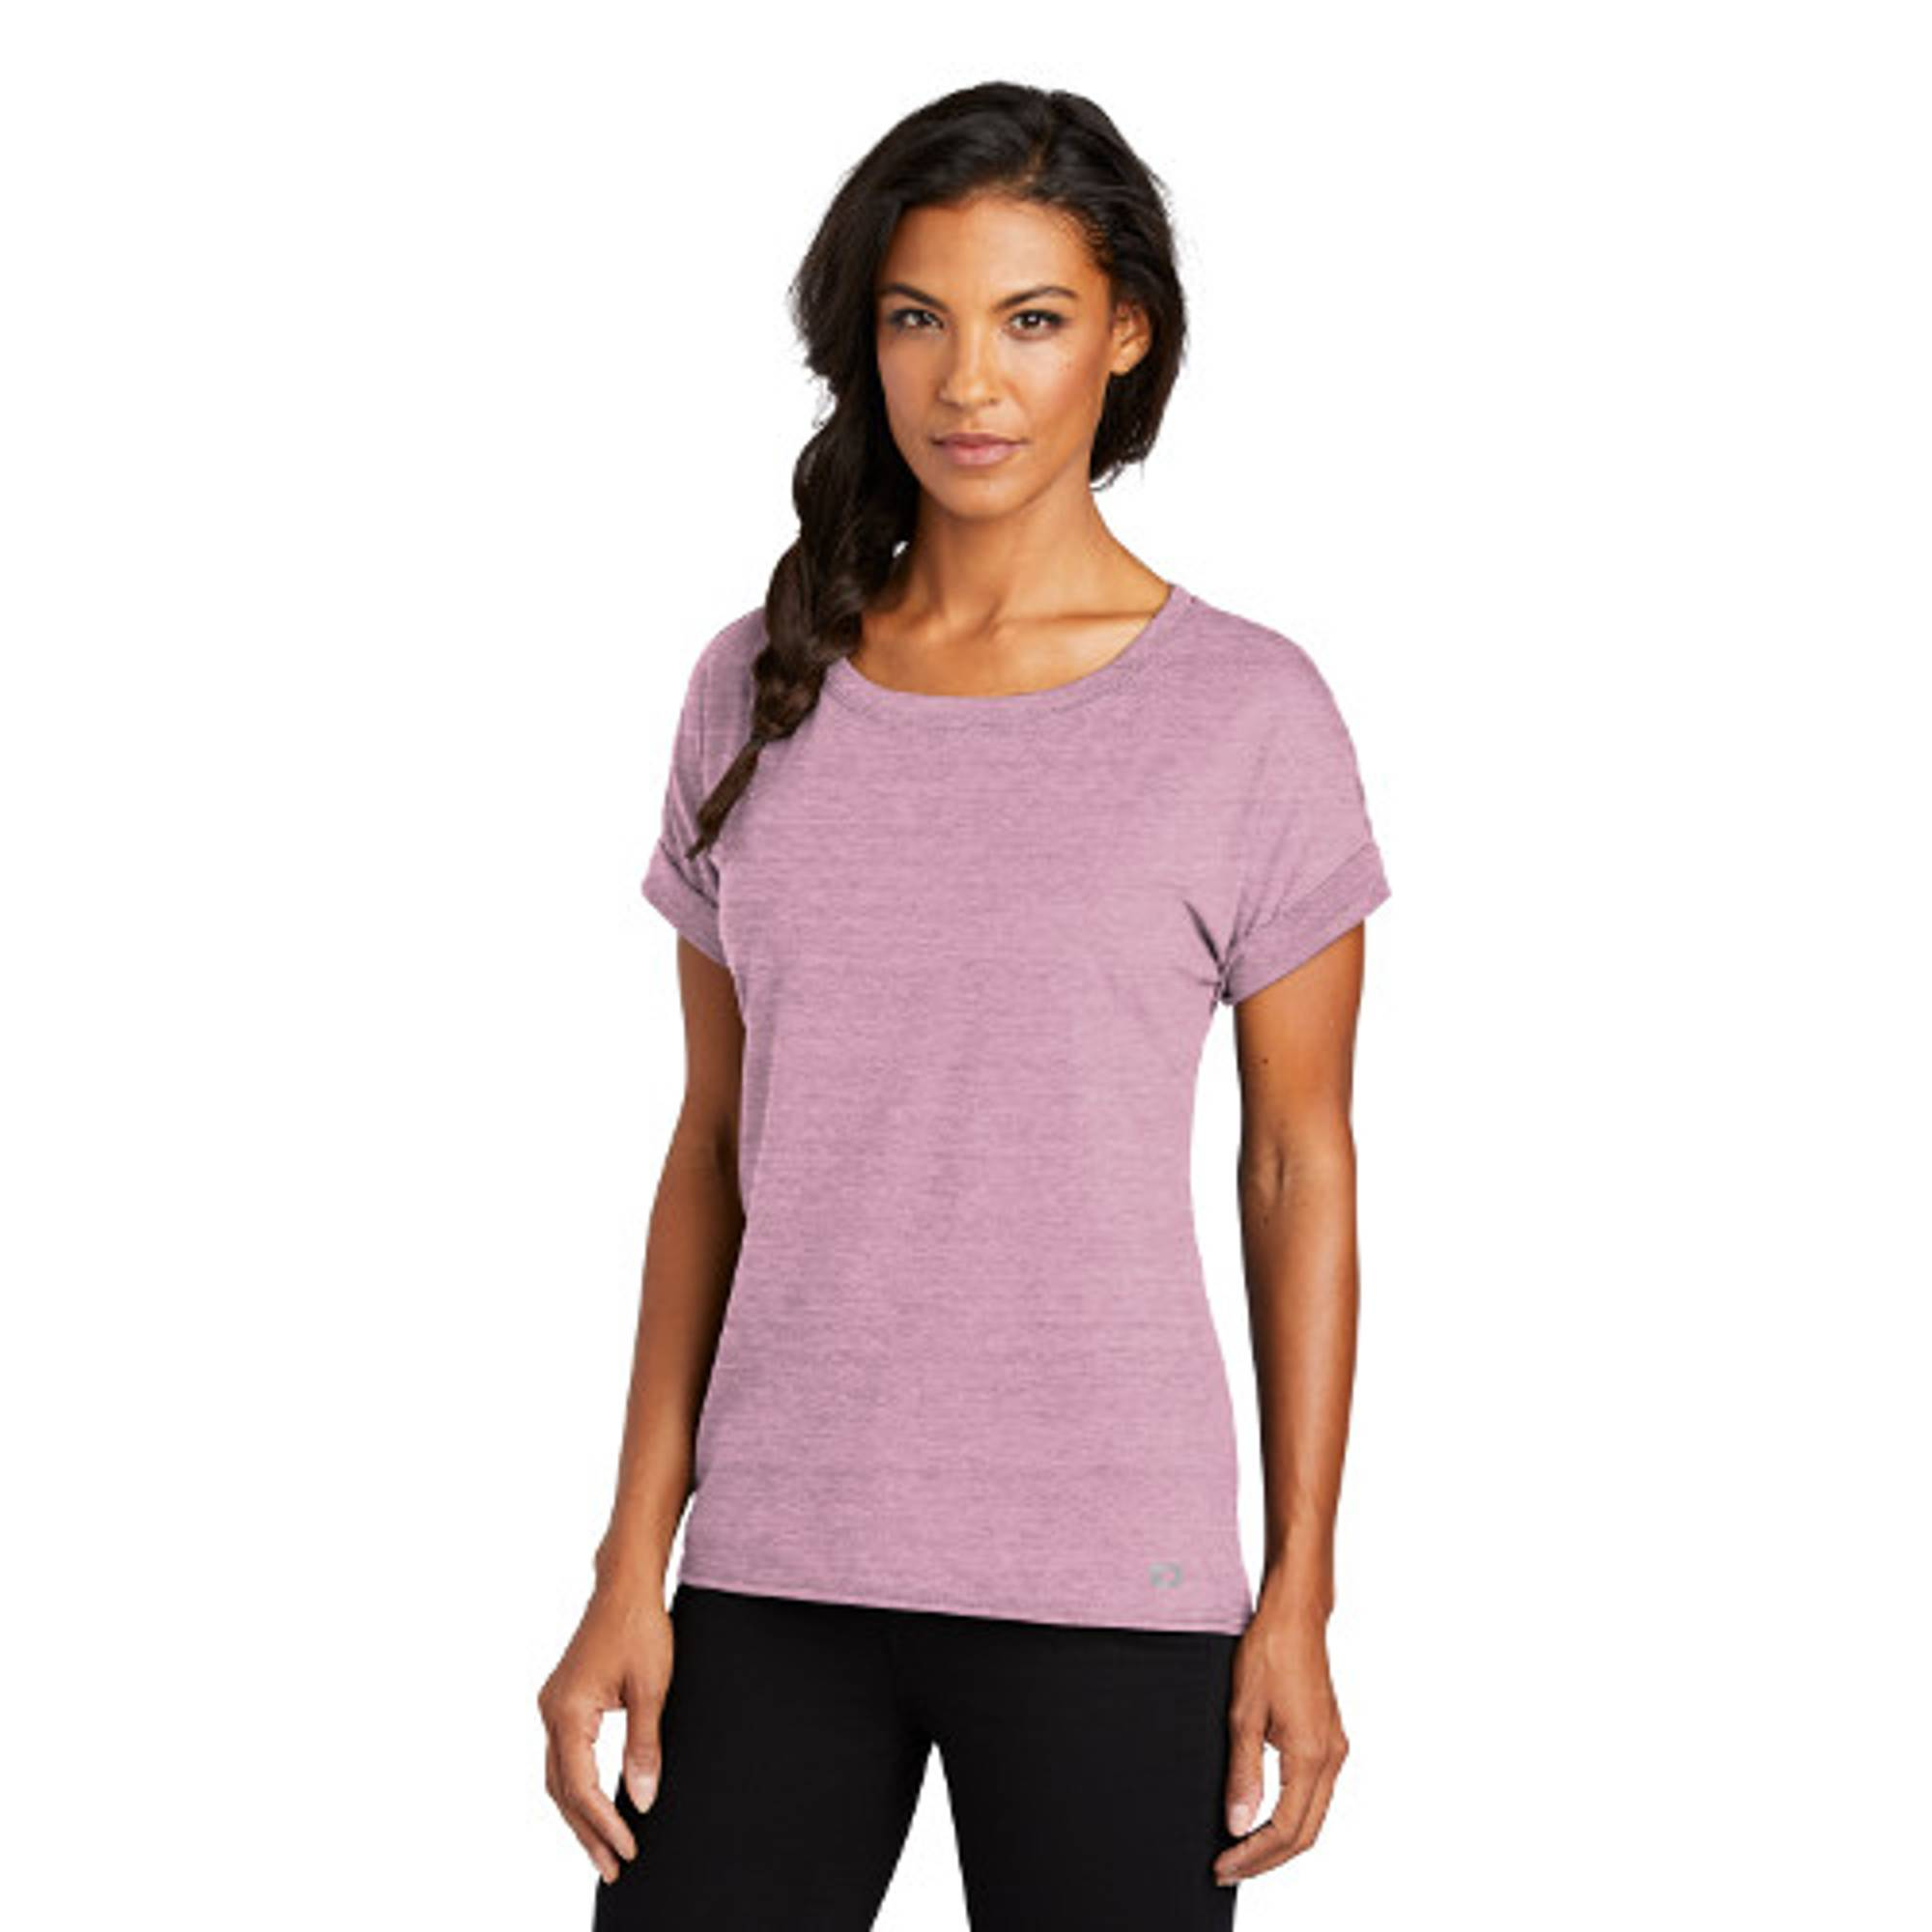 OGIO® Ladies Luuma Cuffed Short Sleeve Tee